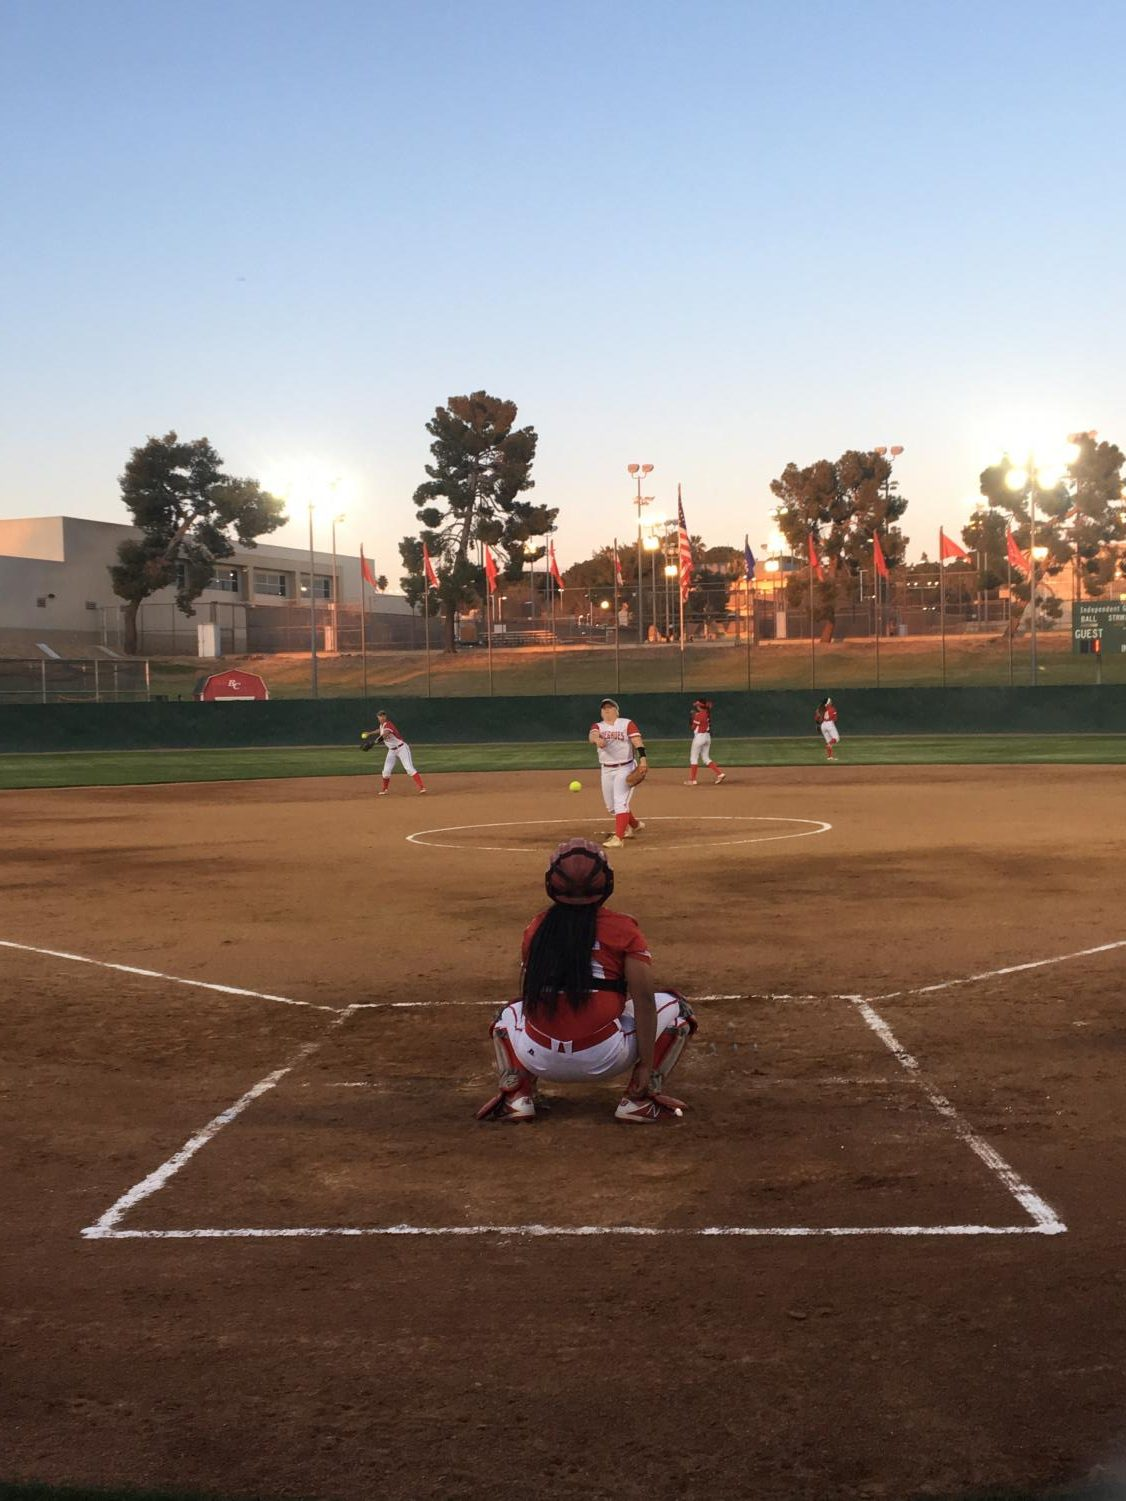 Bakersfield College pitcher Kylee Fahy warms up with catcher Naizemarie Ubay before their double-header against Taft College.